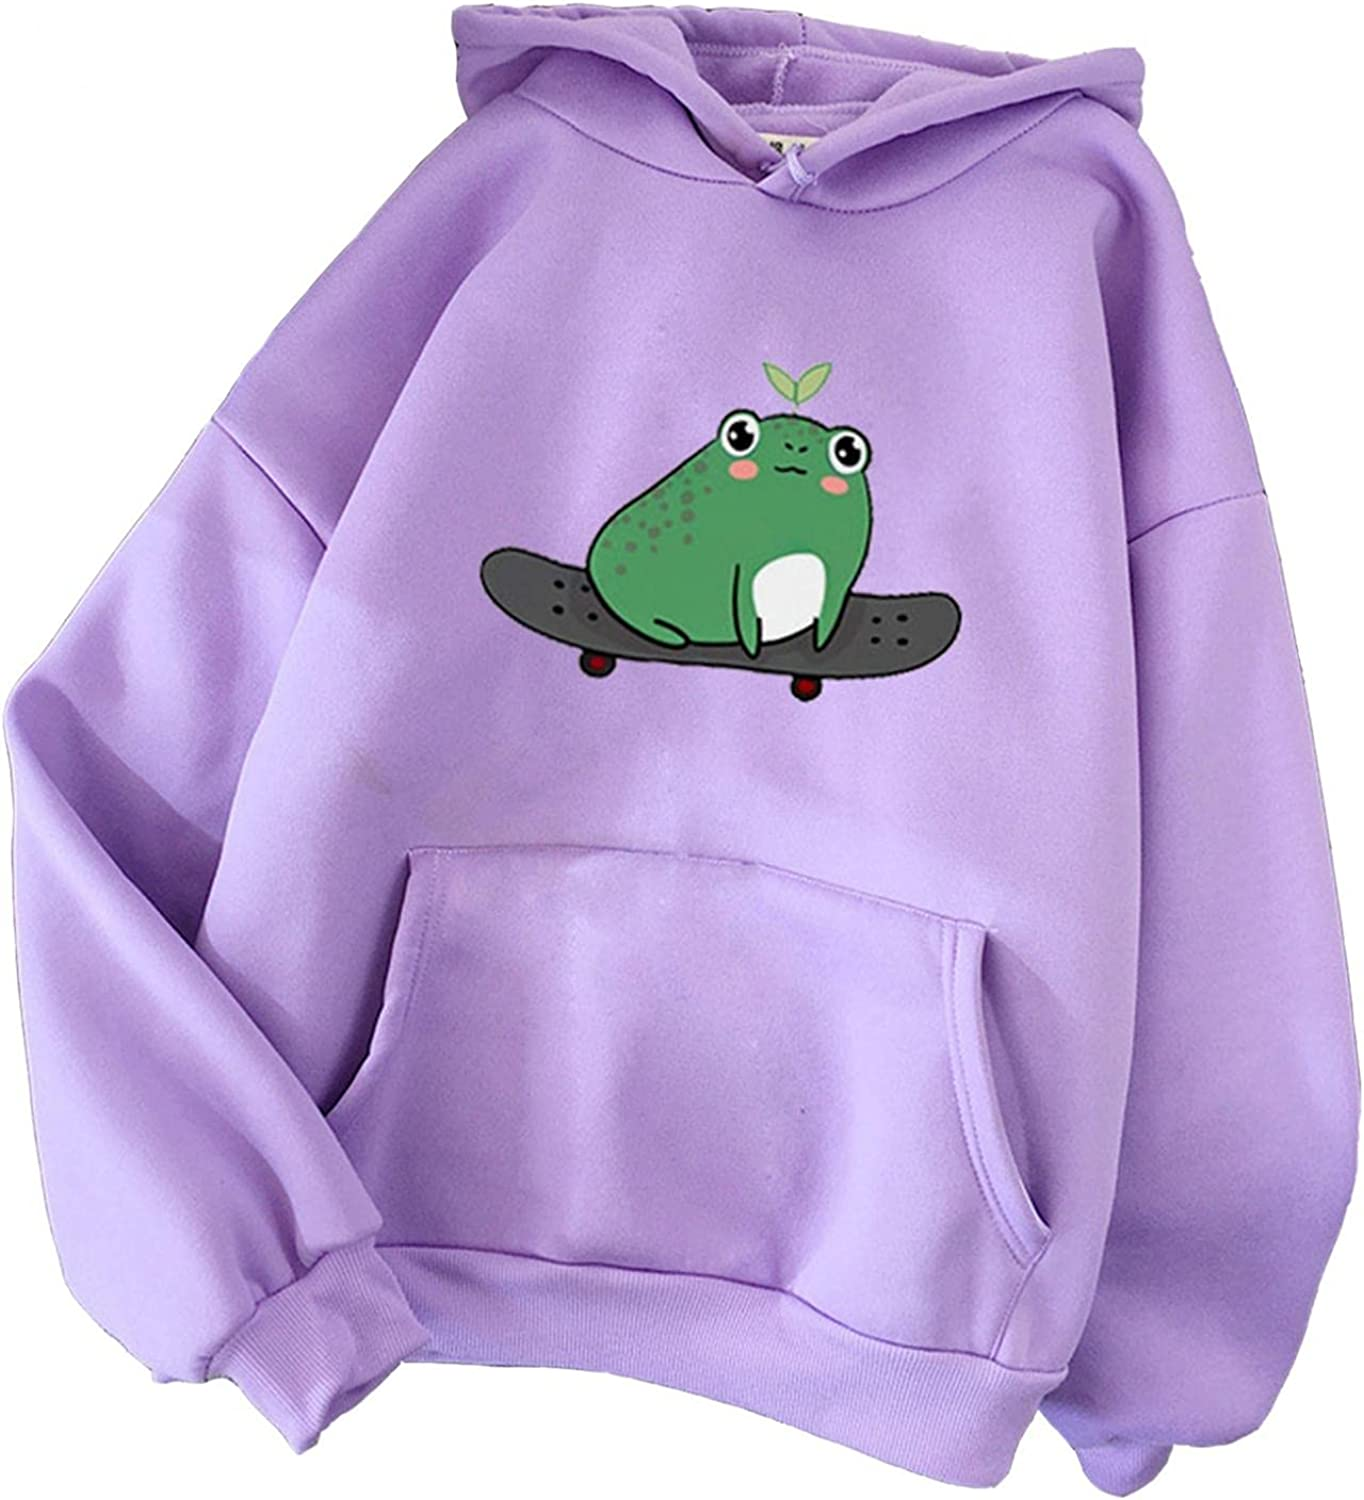 Haheyrte Hoodies for Womens Skateboarding Frog Printed Hooded Casual Sweatshirts Pullover Tops Shirts Sweaters